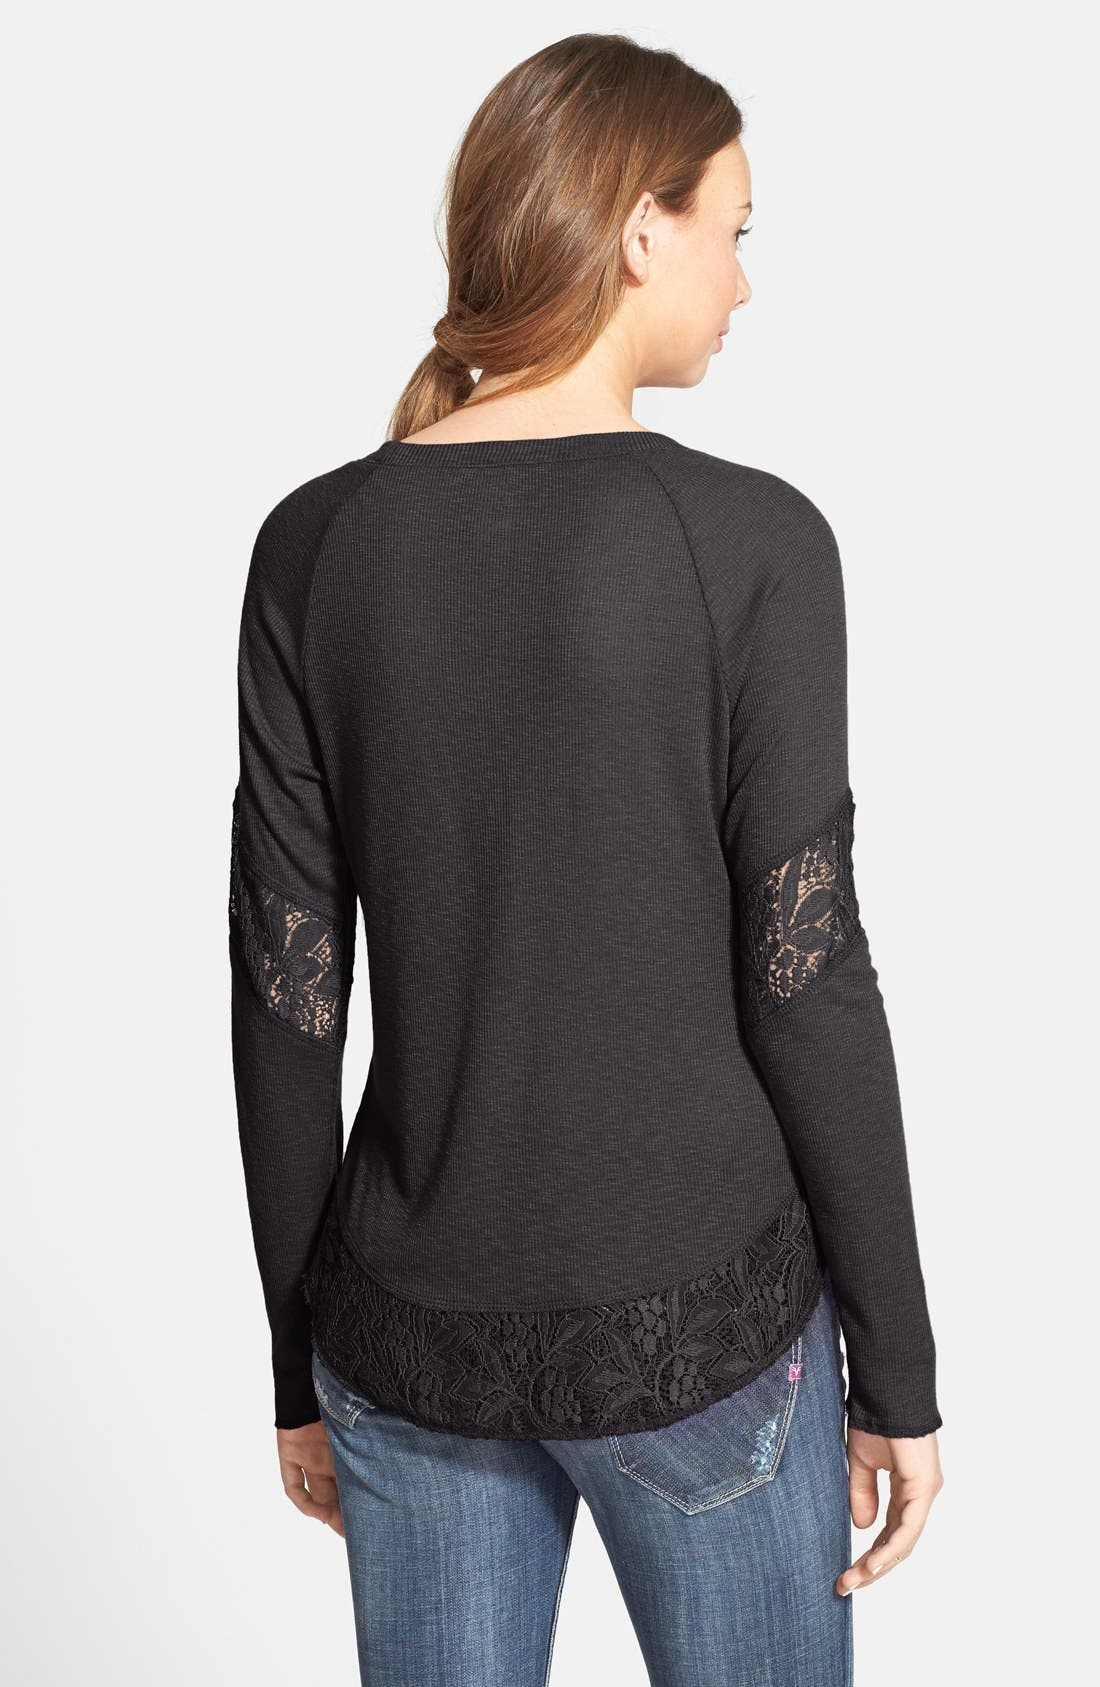 SUN & SHADOW, Lace Trim Thermal Top, Alternate thumbnail 2, color, 201